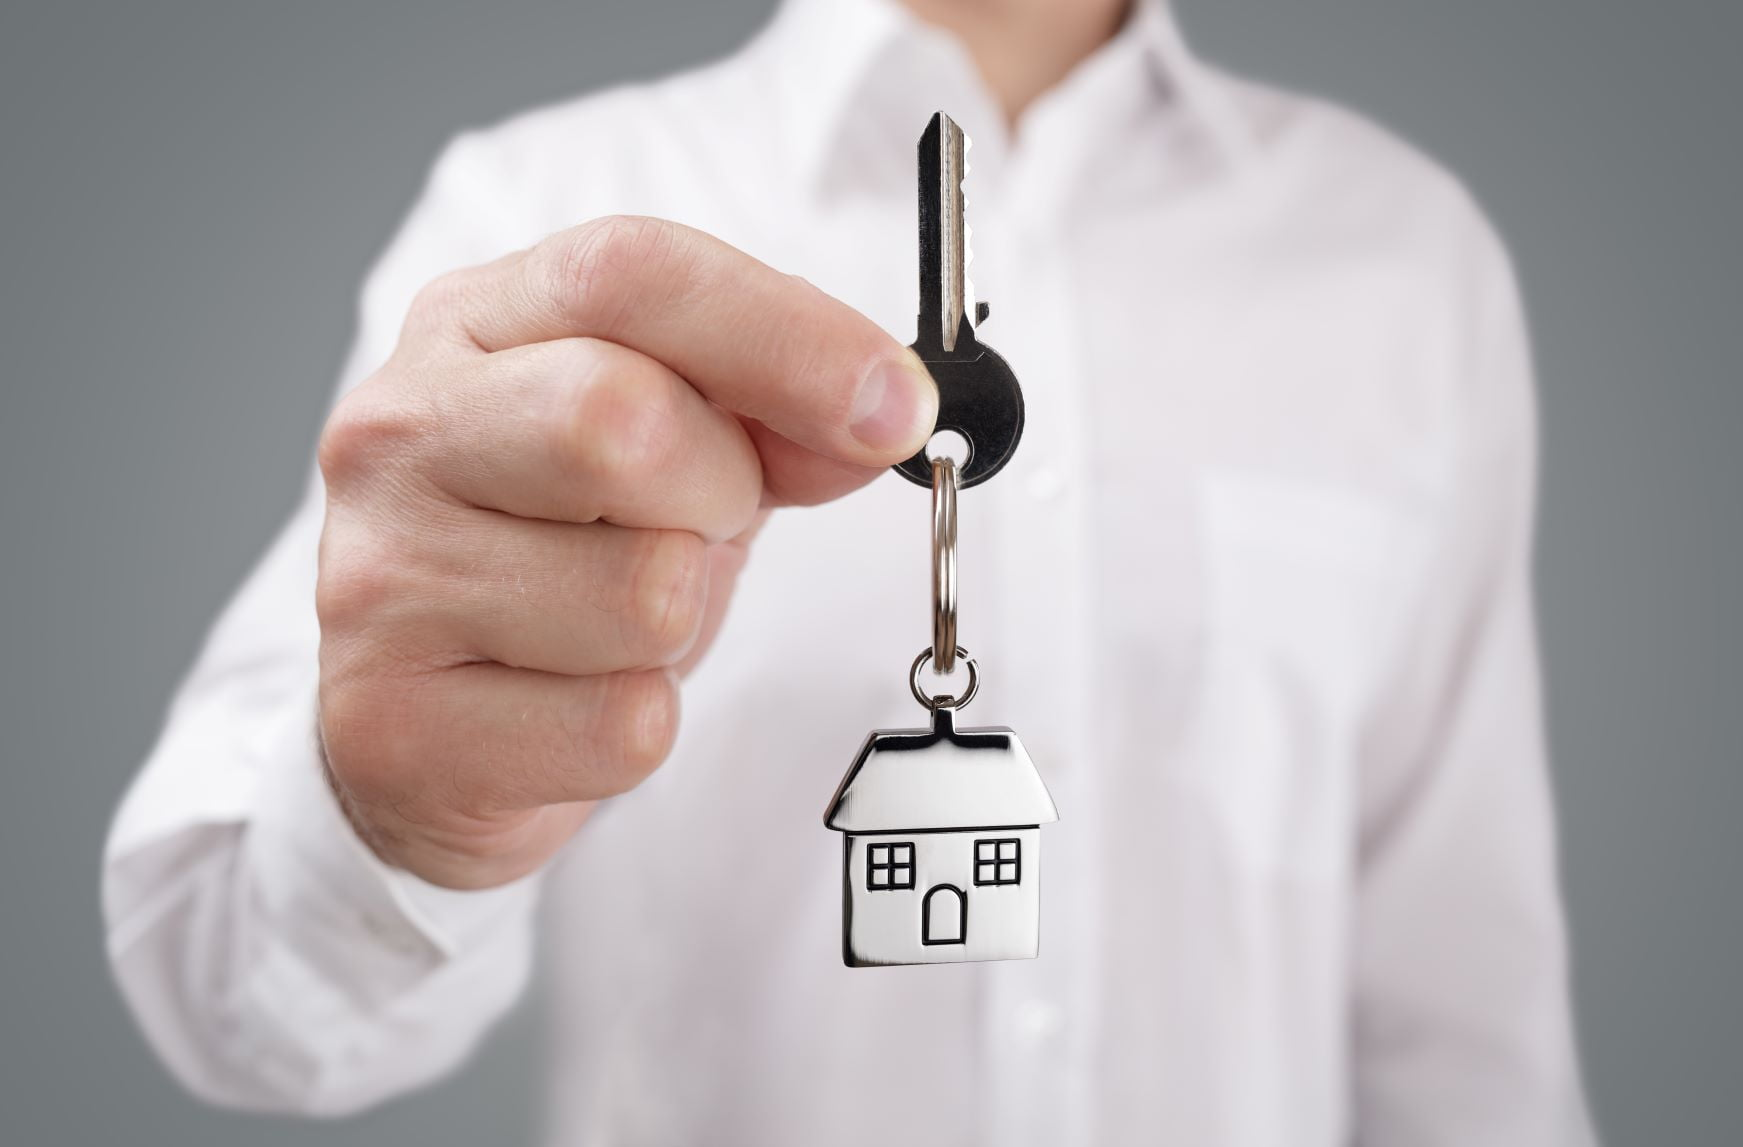 Giving a house key | Advantages of using a mortgage broker - Blog Featured Image""